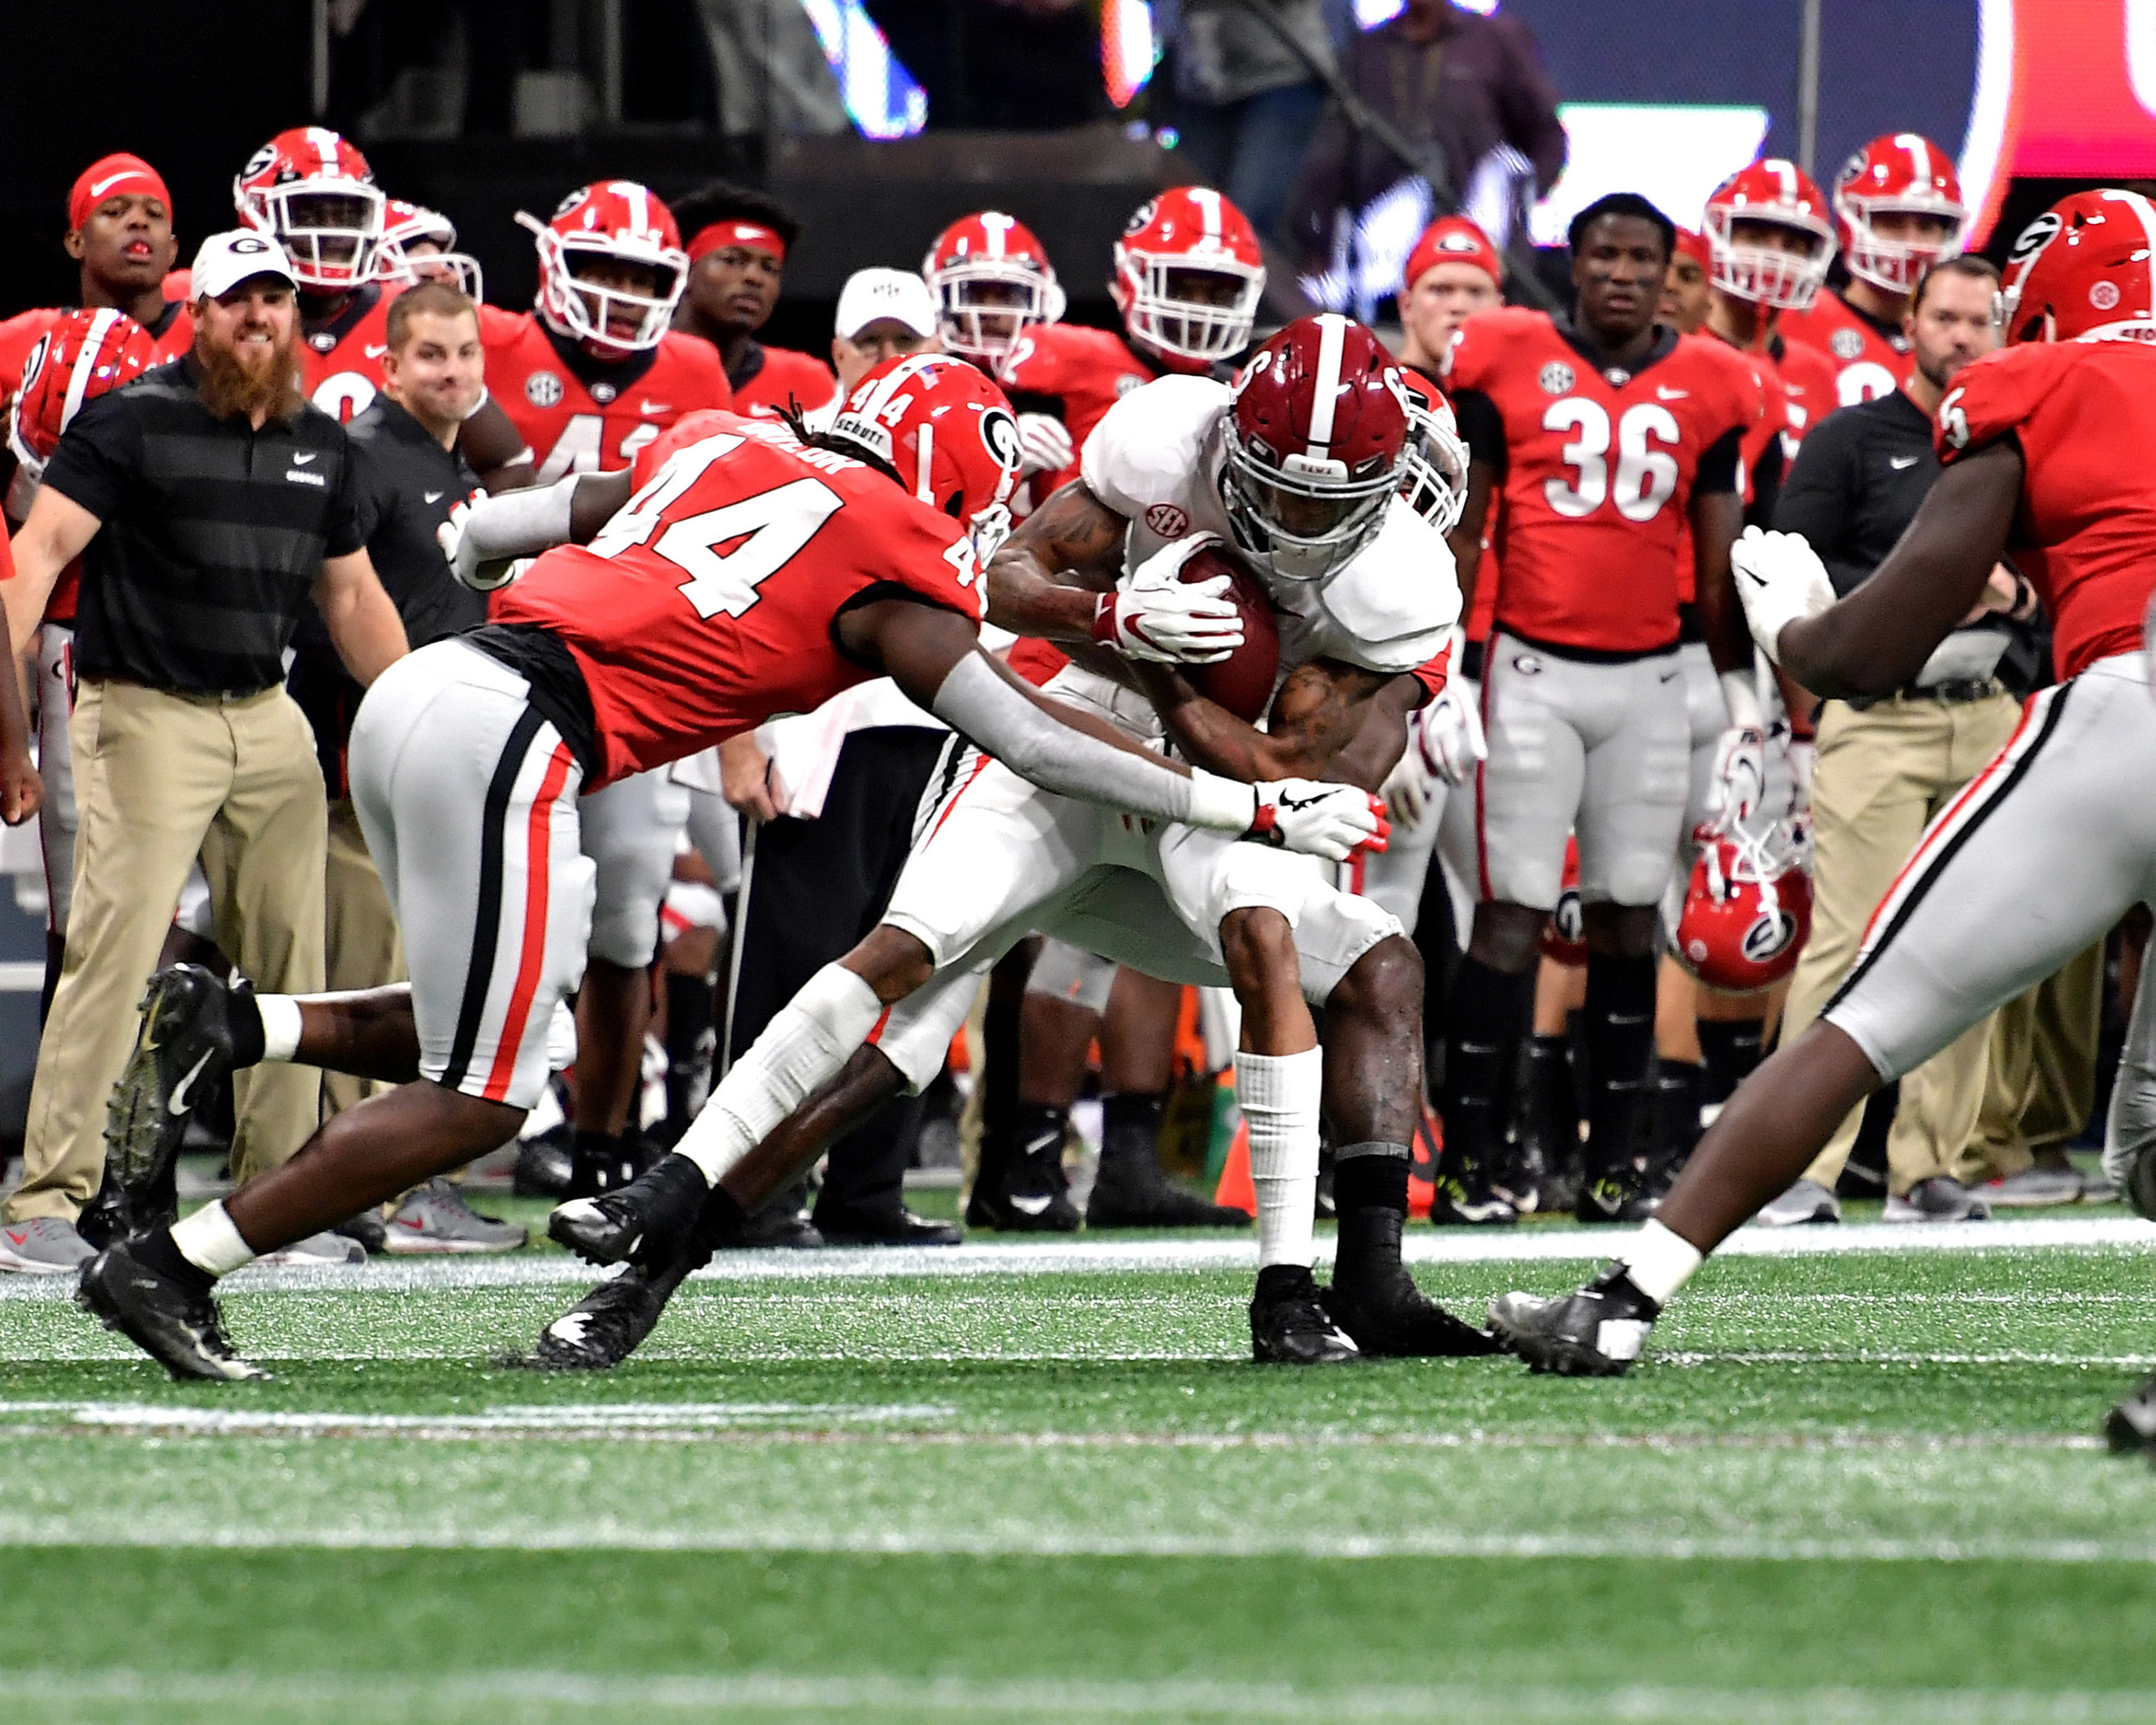 Alabama Crimson Tide wide receiver DeVonta Smith (6) is tackled during the first half of the 2018 SEC Championship football game at Mercedes-Benz Stadium in Atlanta, Ga., on Dec. 1, 2018. Alabama wins 35-28. (Photo by Lee Walls)